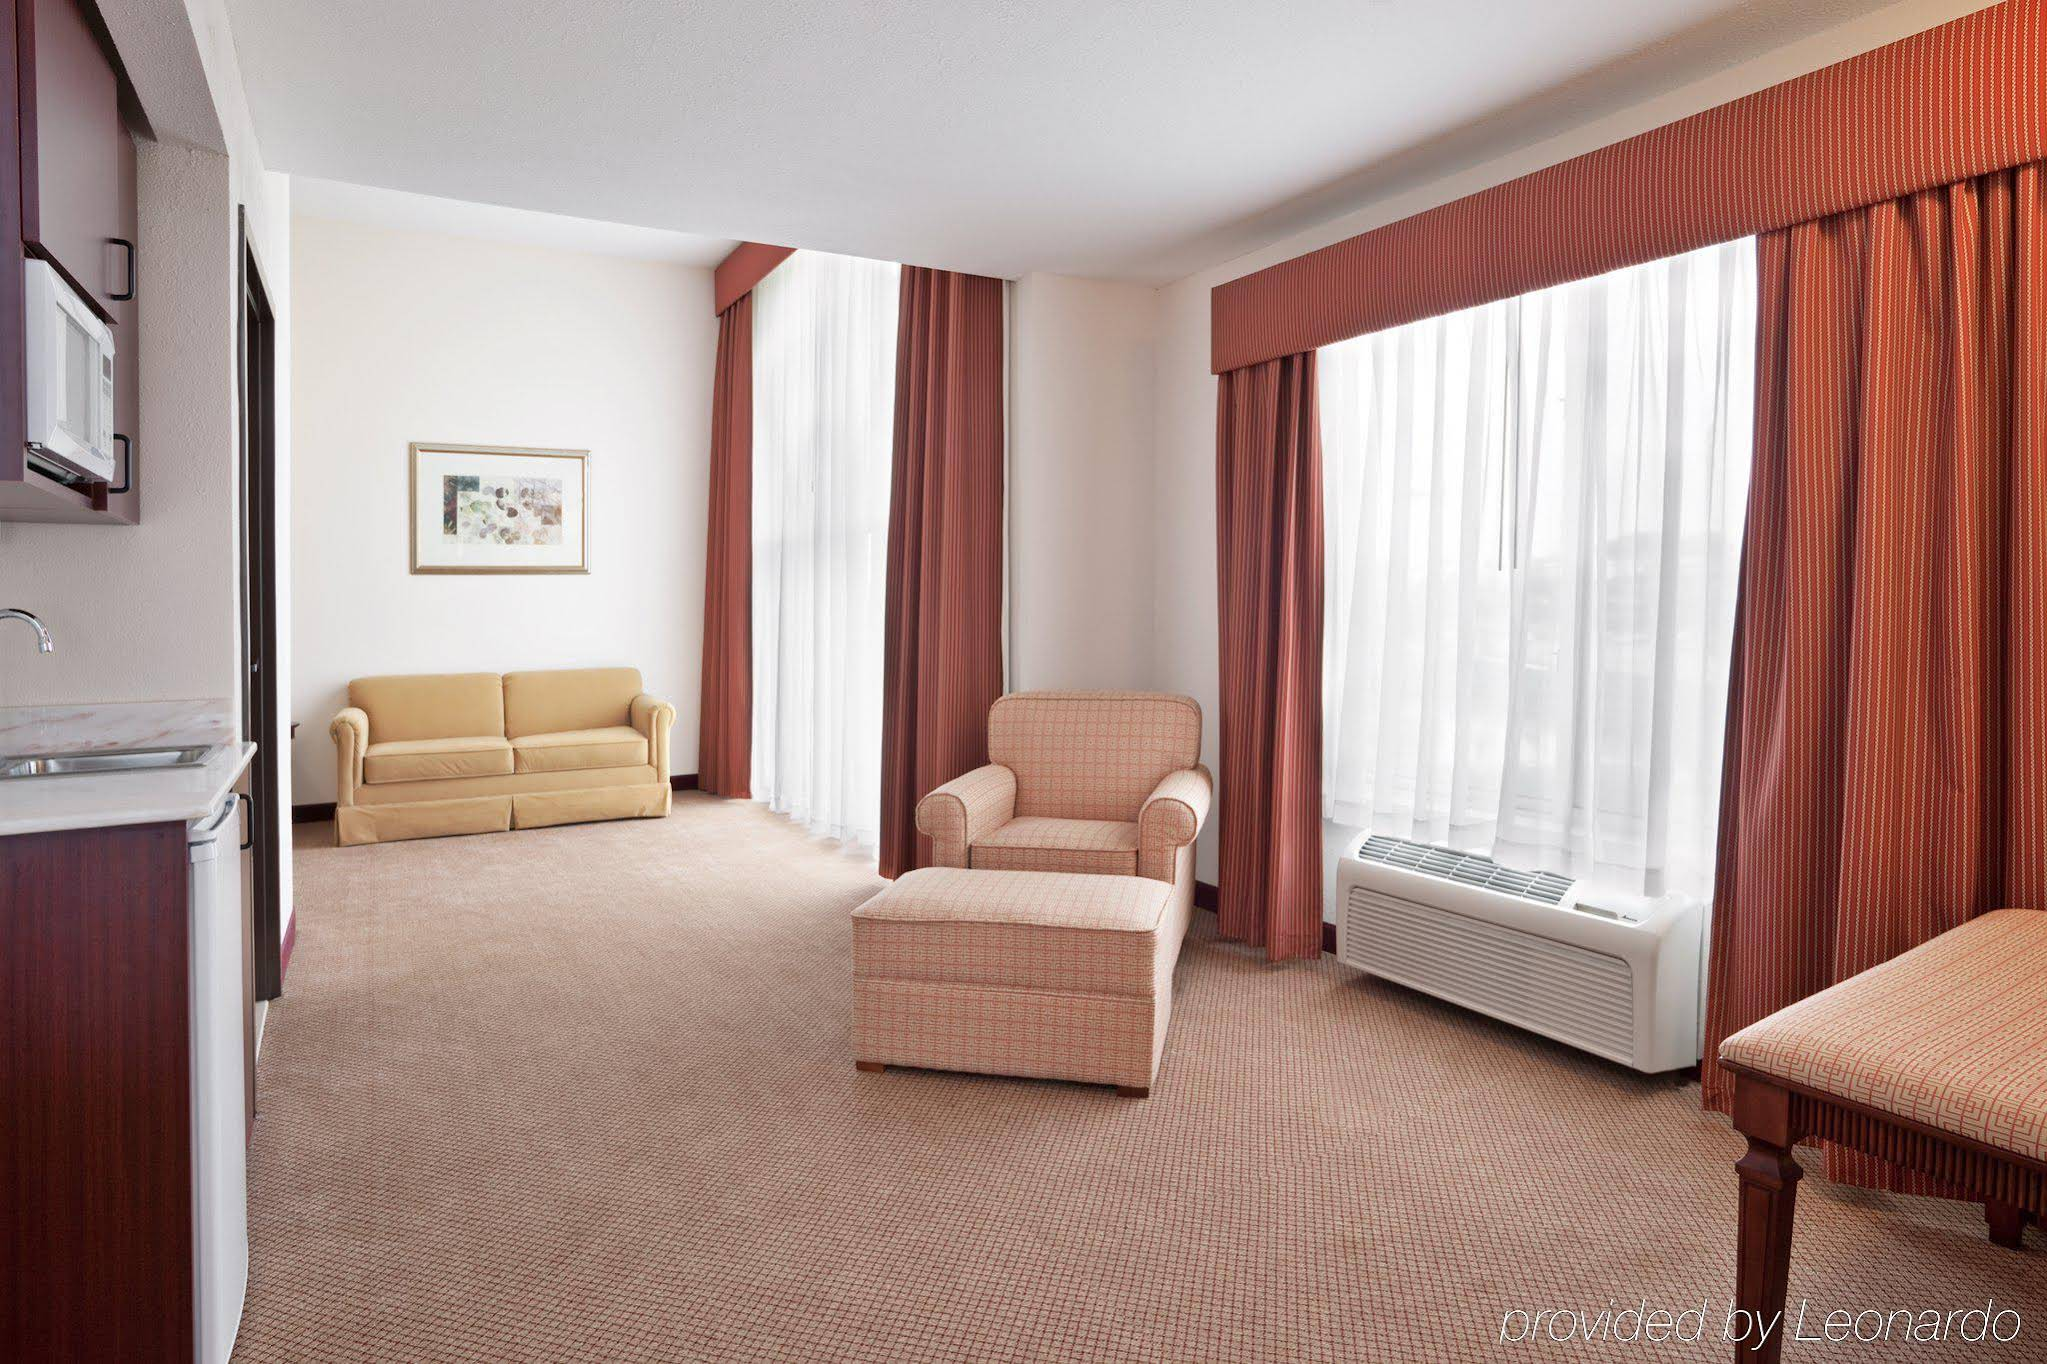 HOLIDAY INN EXPRESS® & SUITES - Northville MI 21100 Haggerty Rd. 48167